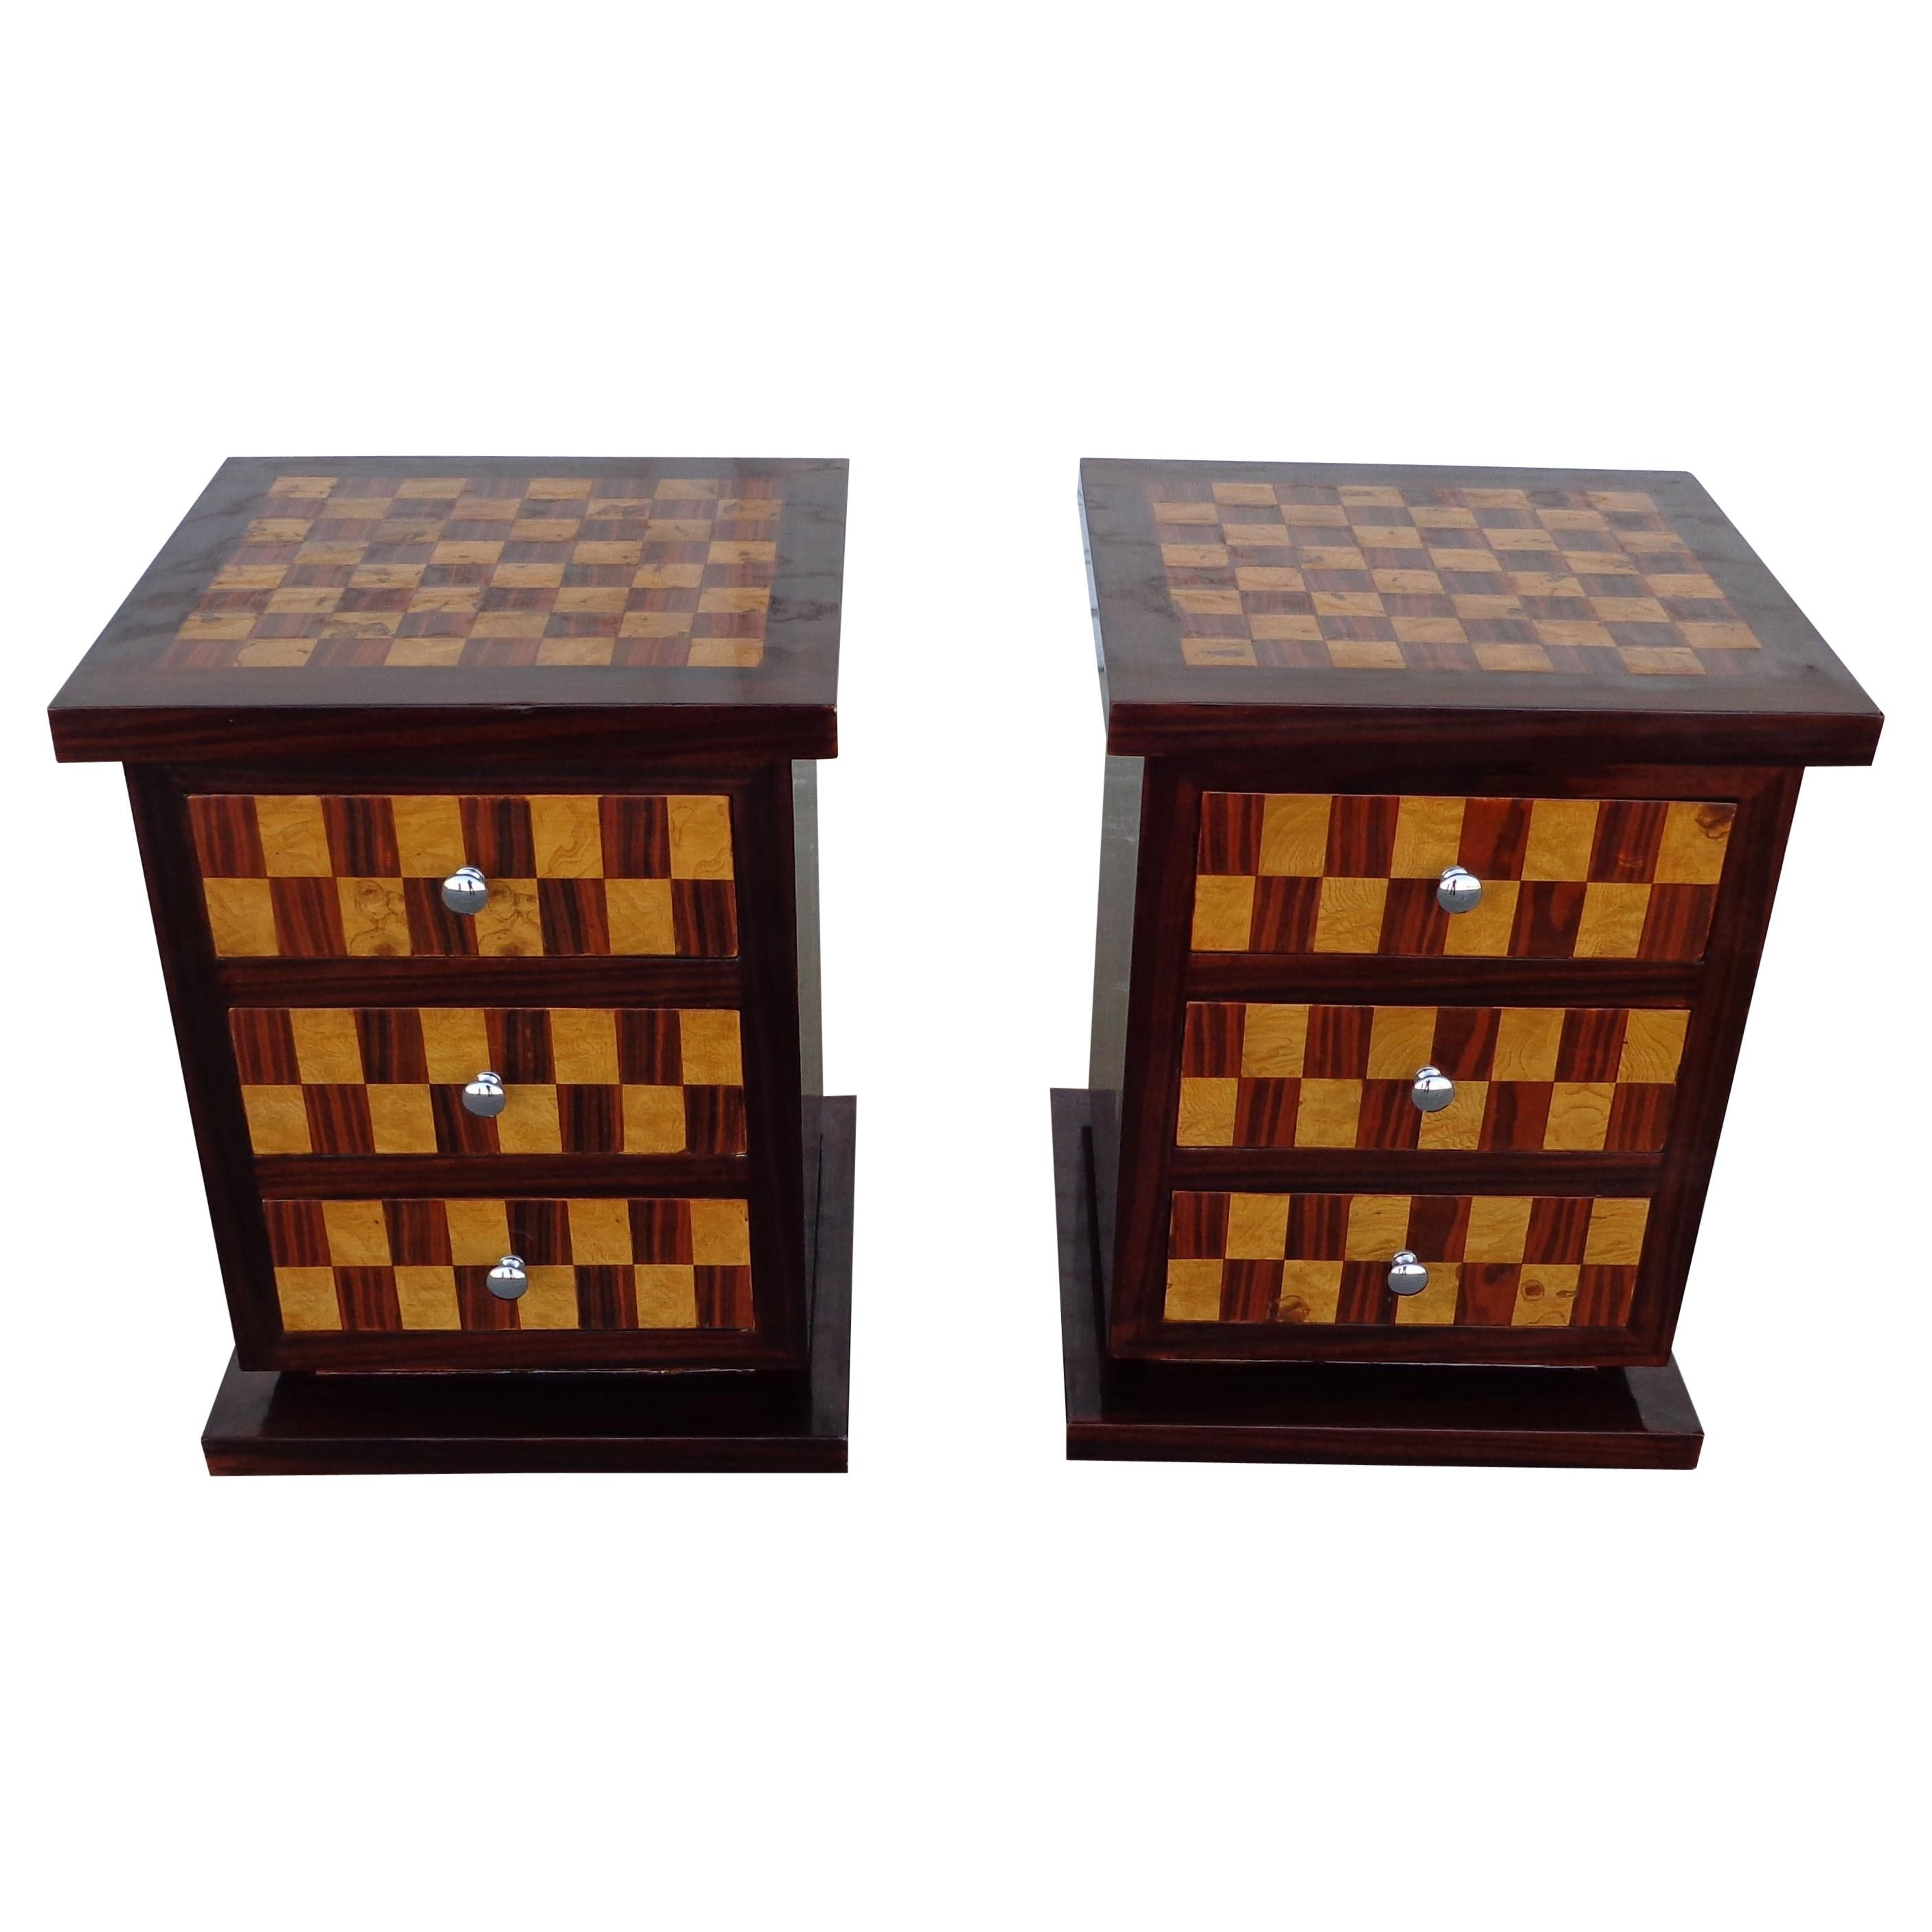 Pair of Art Deco Style Nightstands or Side Tables